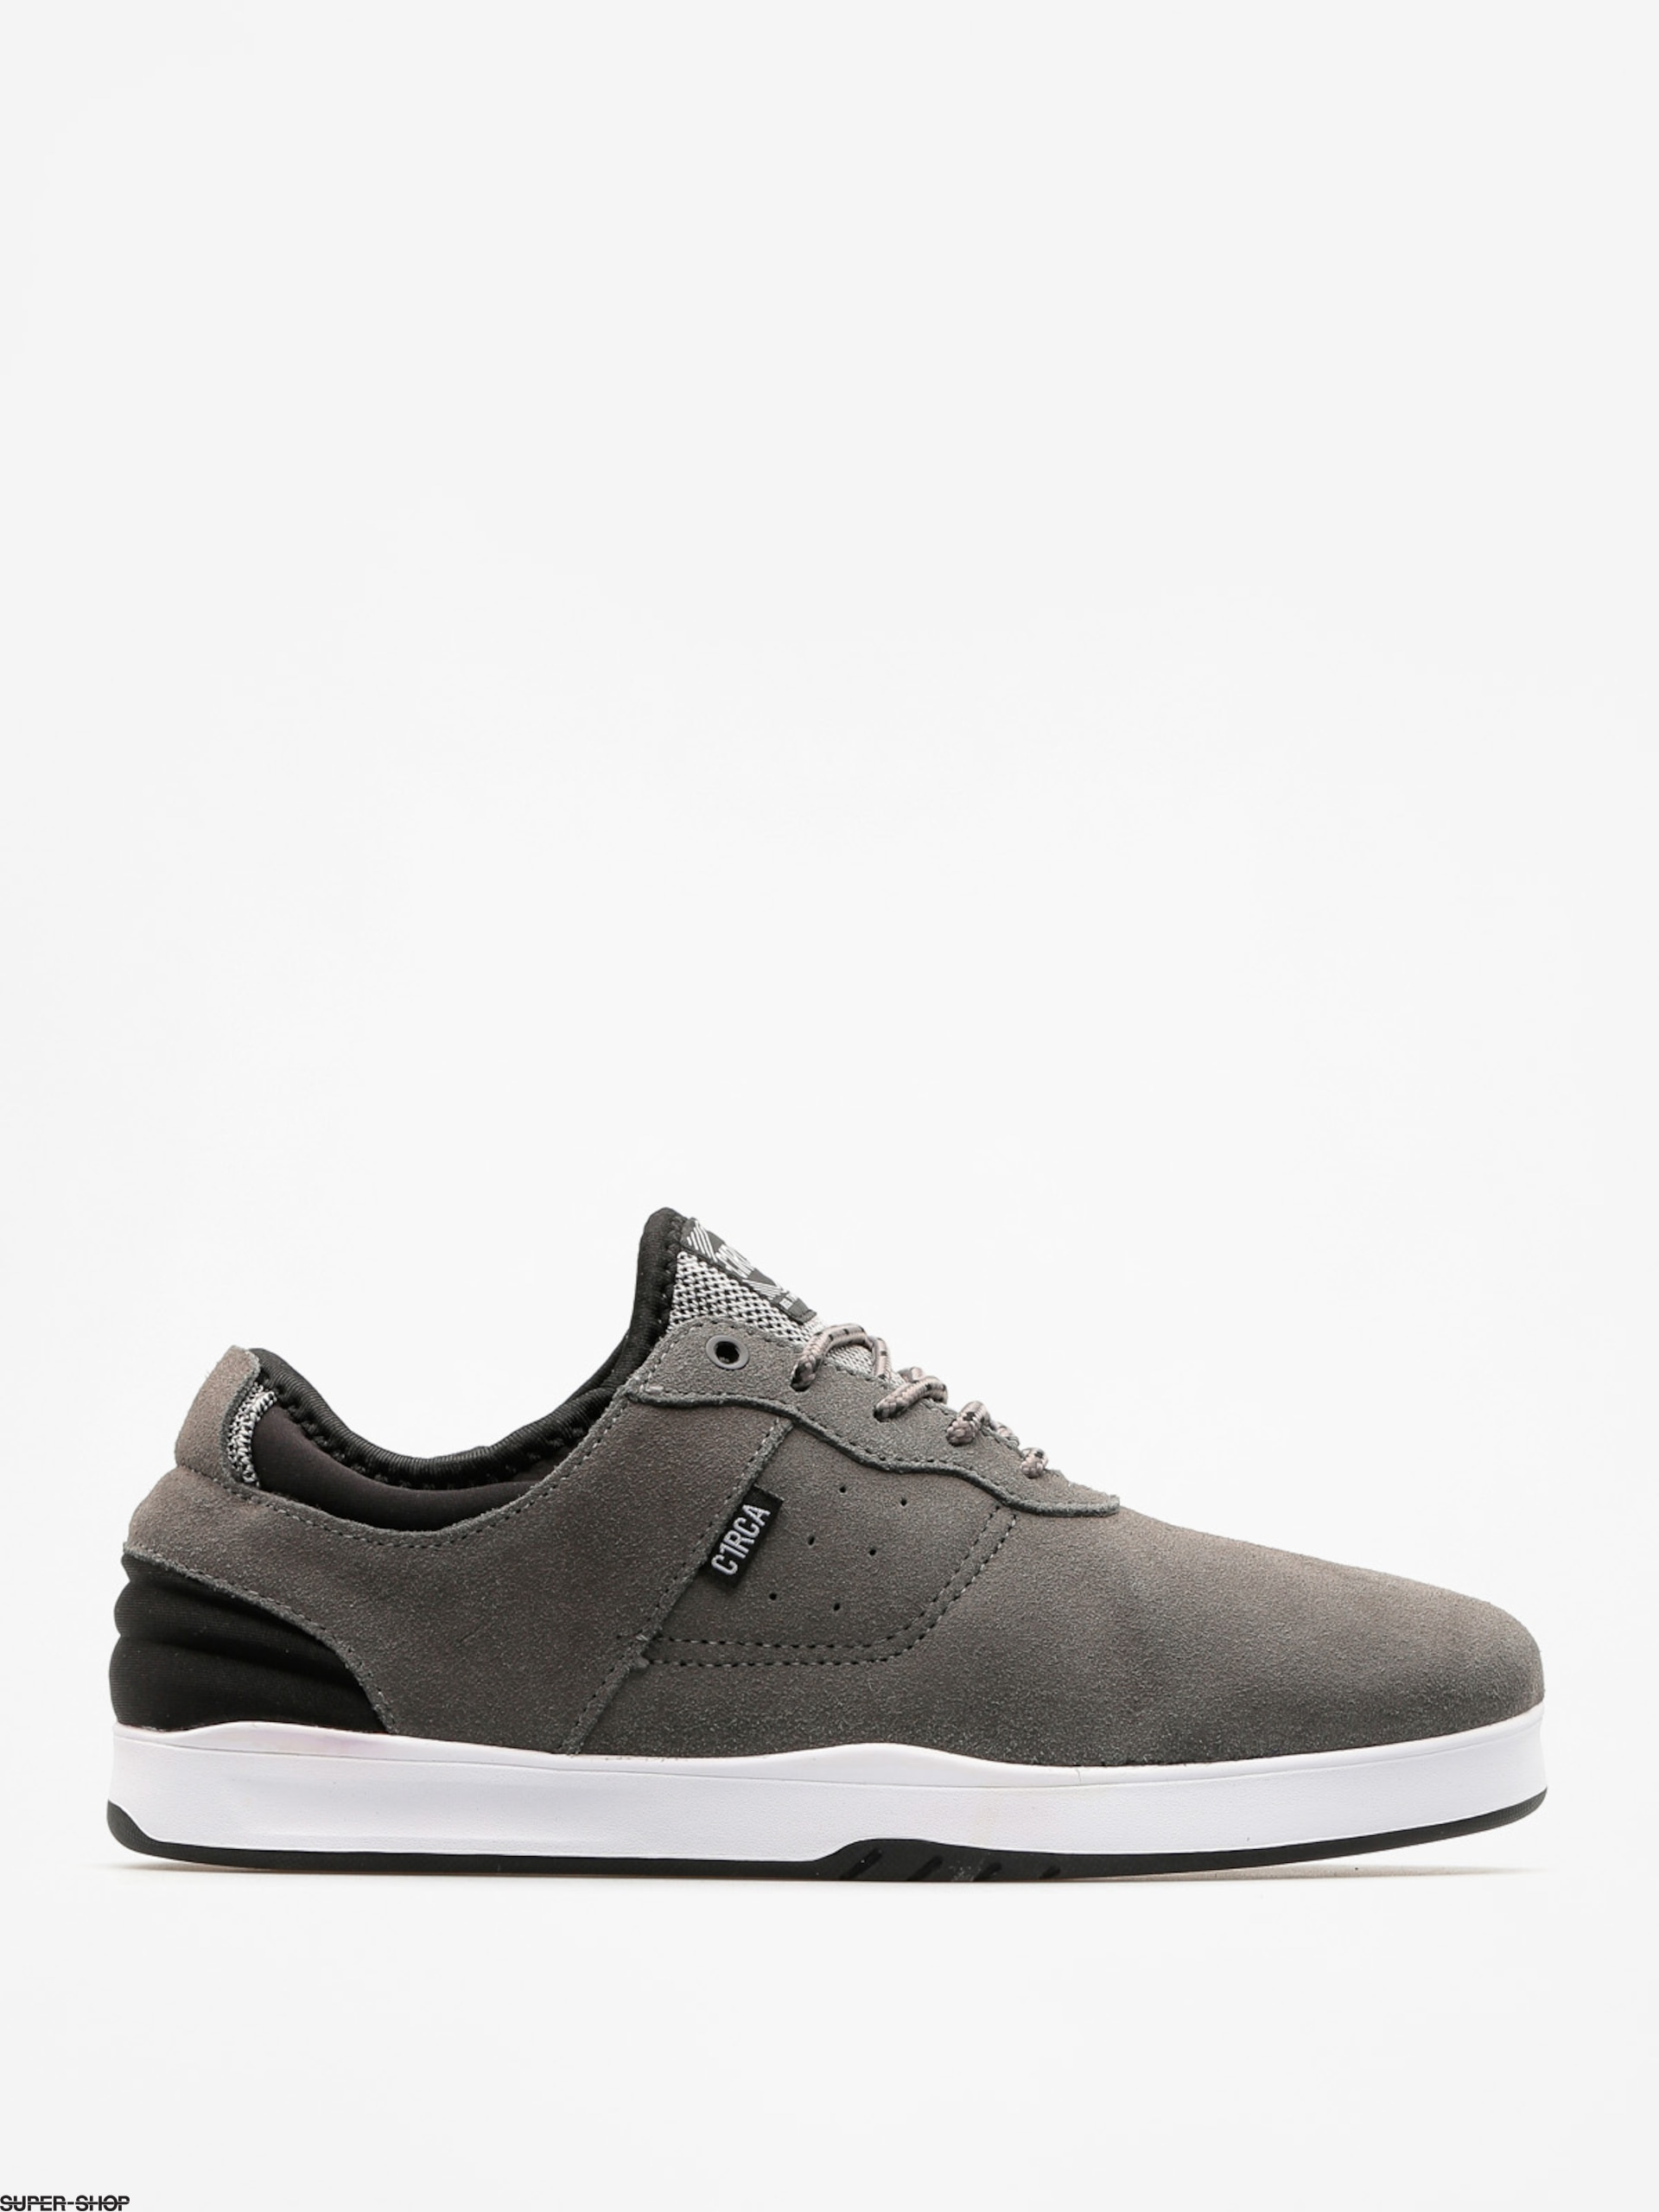 Circa Shoes Salix (charcoal/black)